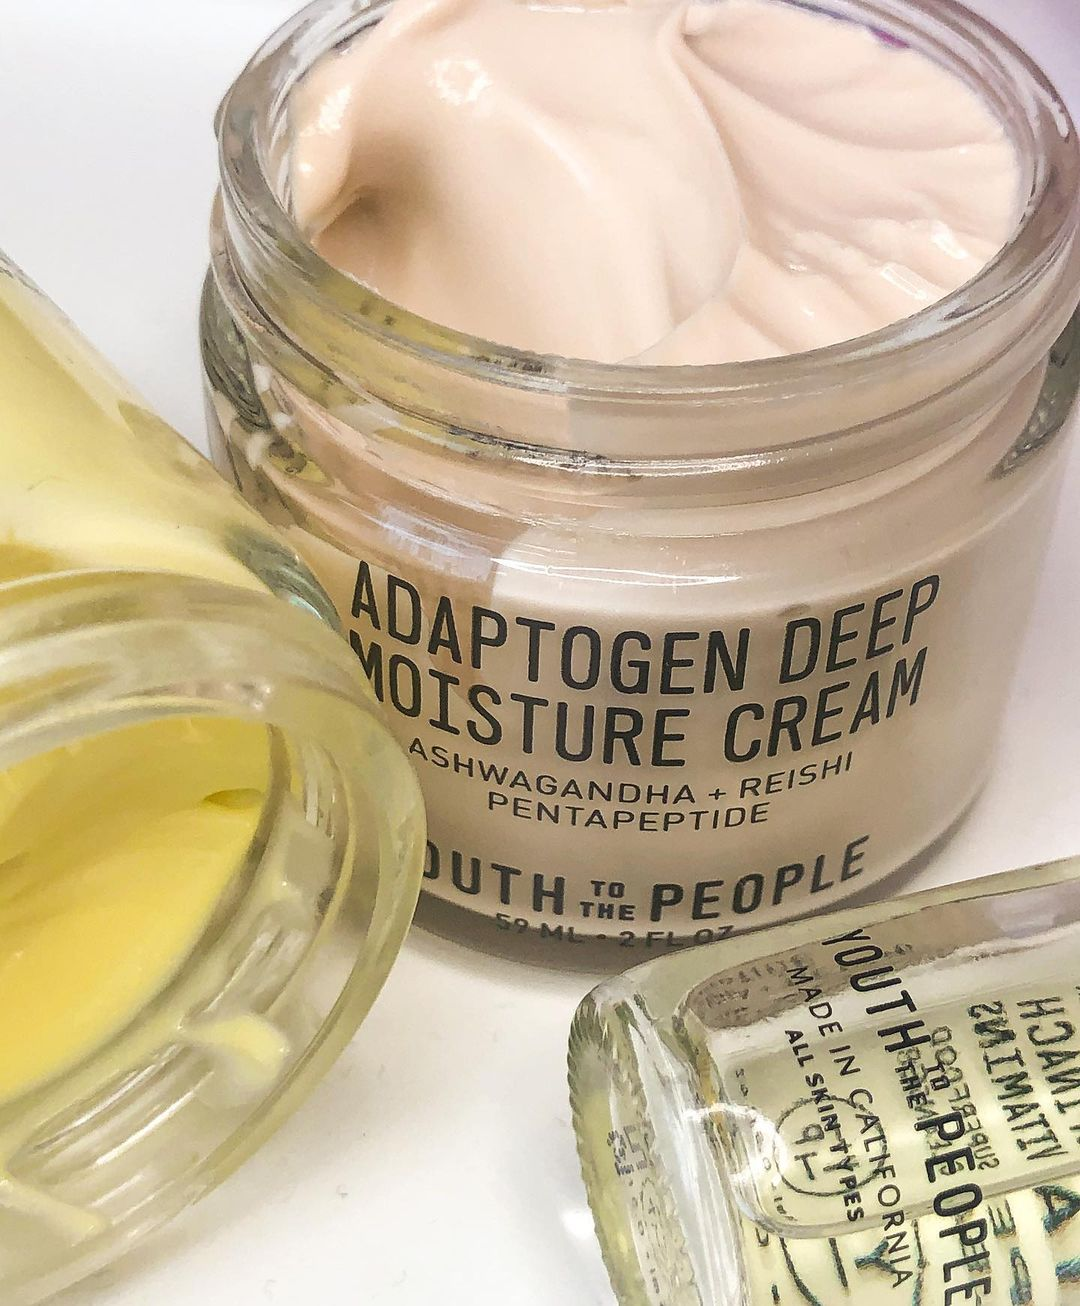 youth-to-the-people-adaptogen-deep-moisture-cream-instagram